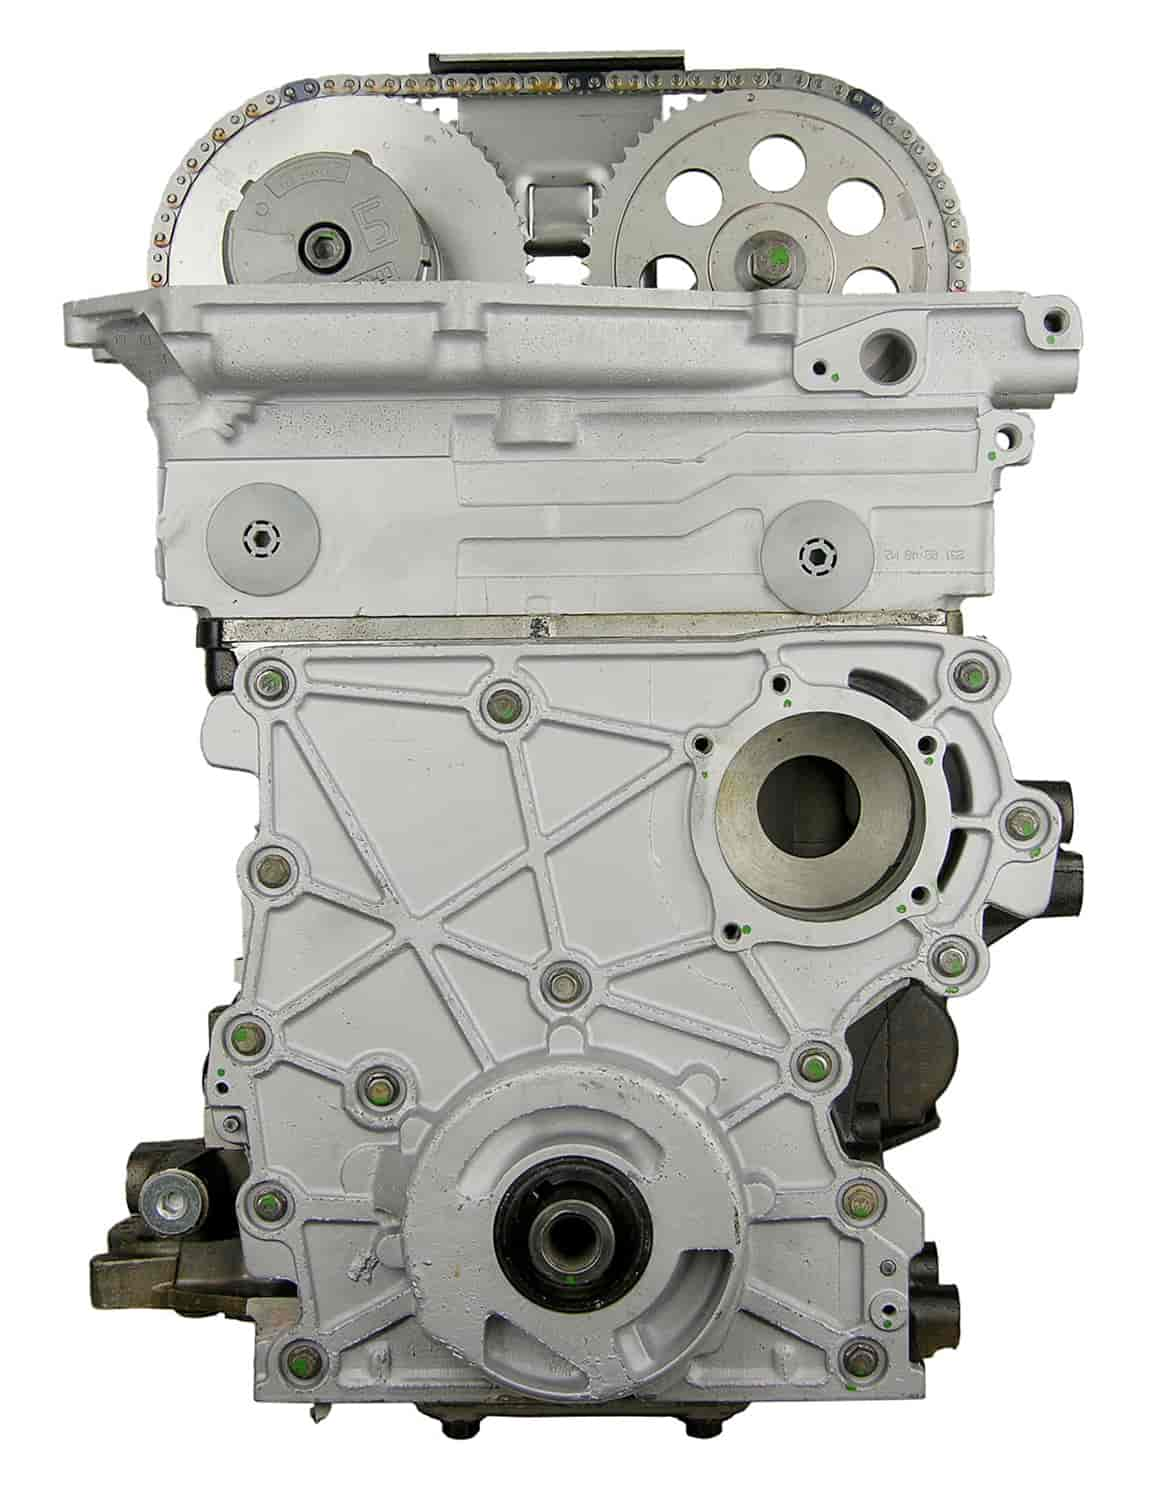 atk engines dcty remanufactured crate engine for 2004 2005 chevy colorado gmc canyon with 3. Black Bedroom Furniture Sets. Home Design Ideas